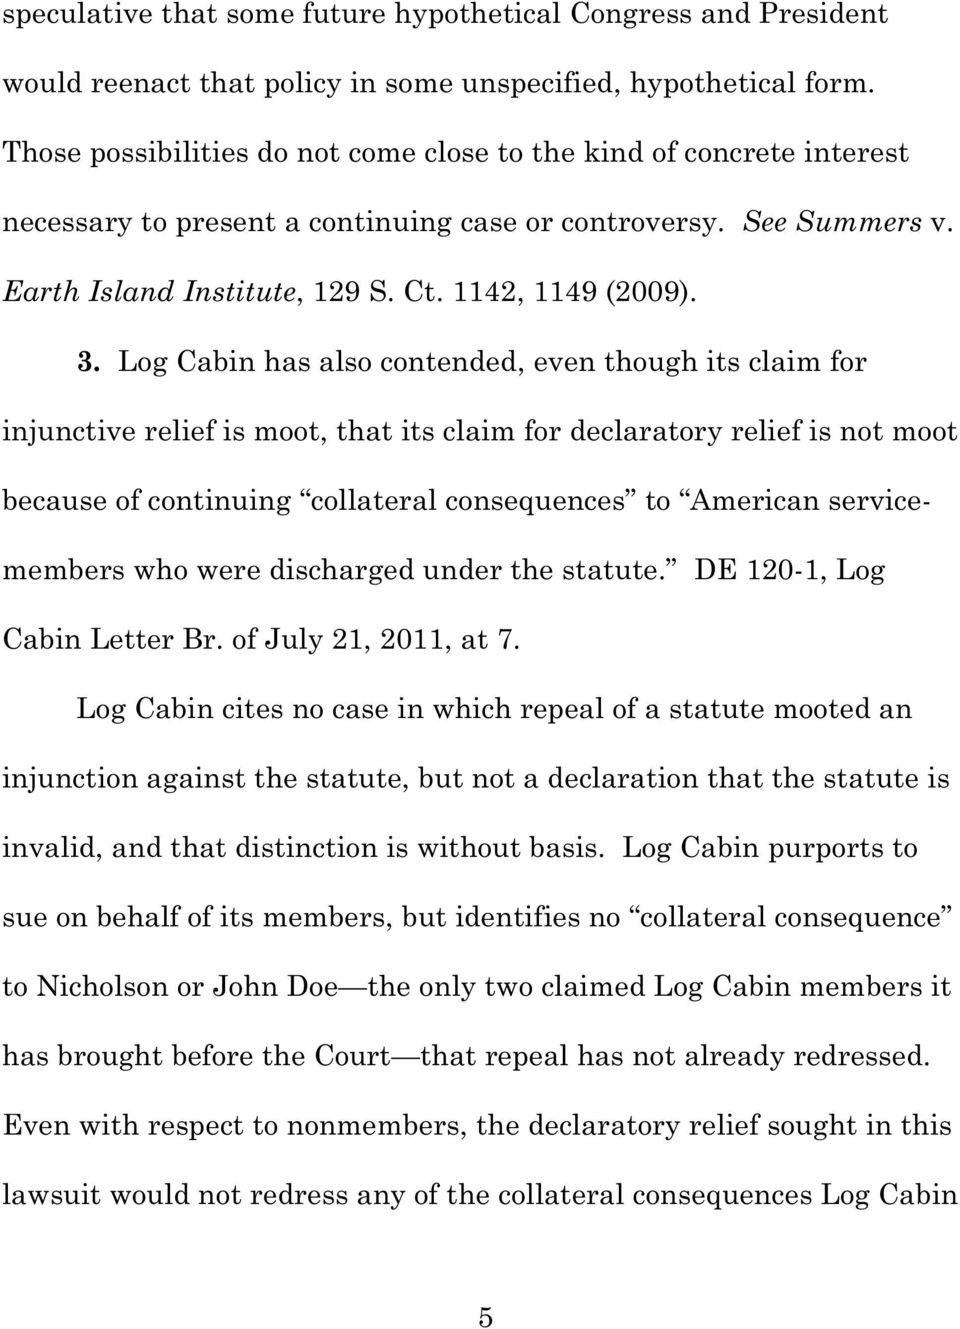 Log Cabin has also contended, even though its claim for injunctive relief is moot, that its claim for declaratory relief is not moot because of continuing collateral consequences to American